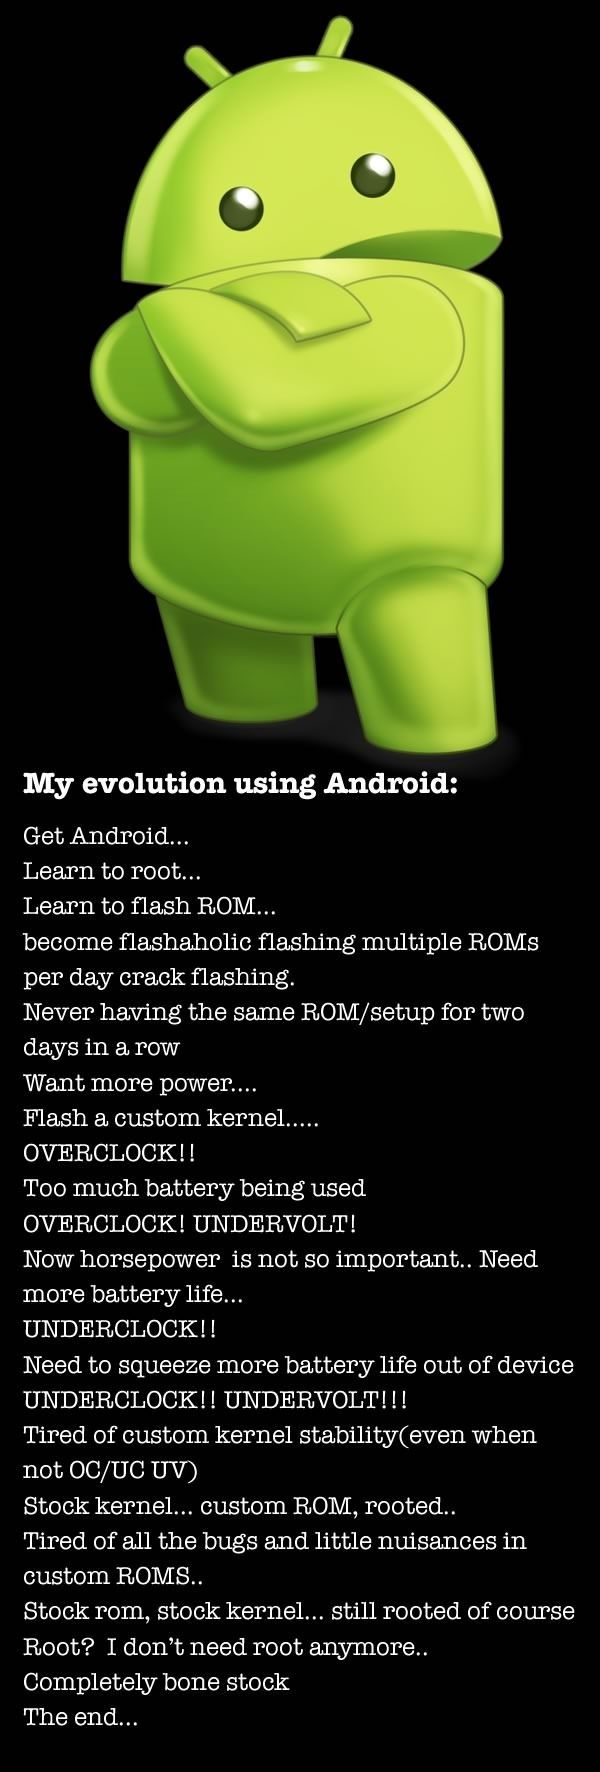 Evolution of using Android